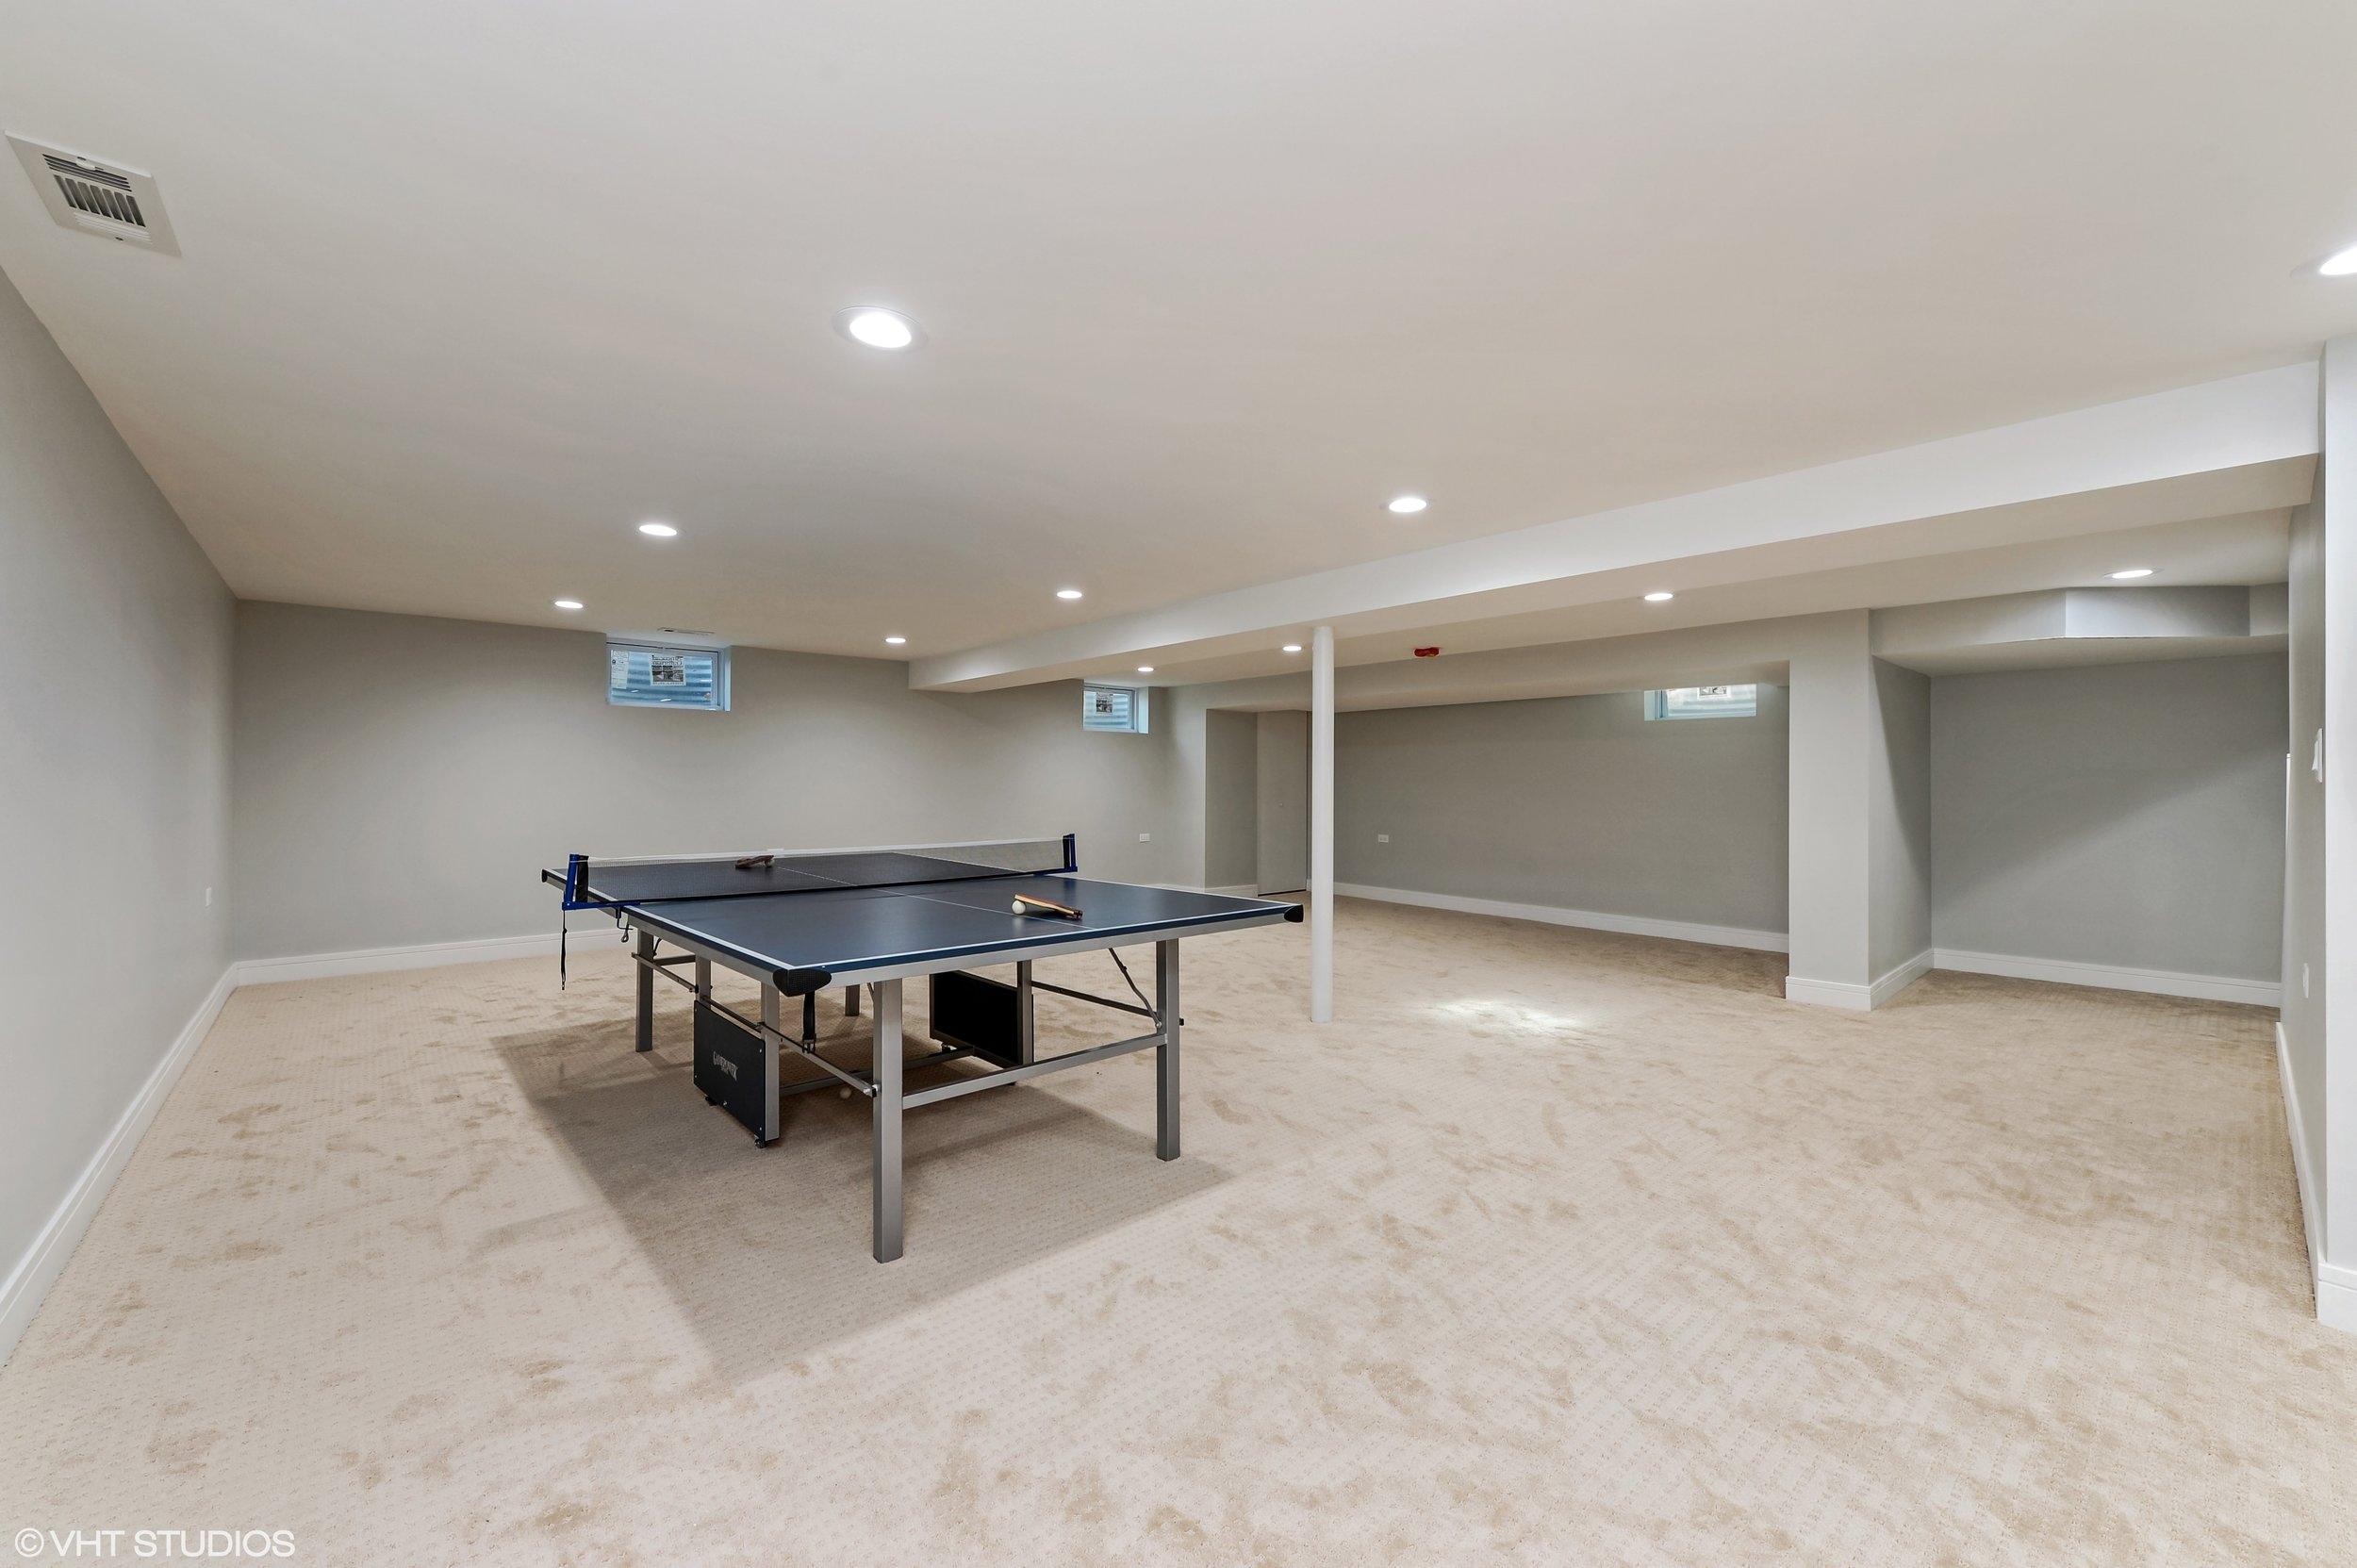 17_8156KennethAve_190_RecreationalRoom_HiRes.jpg